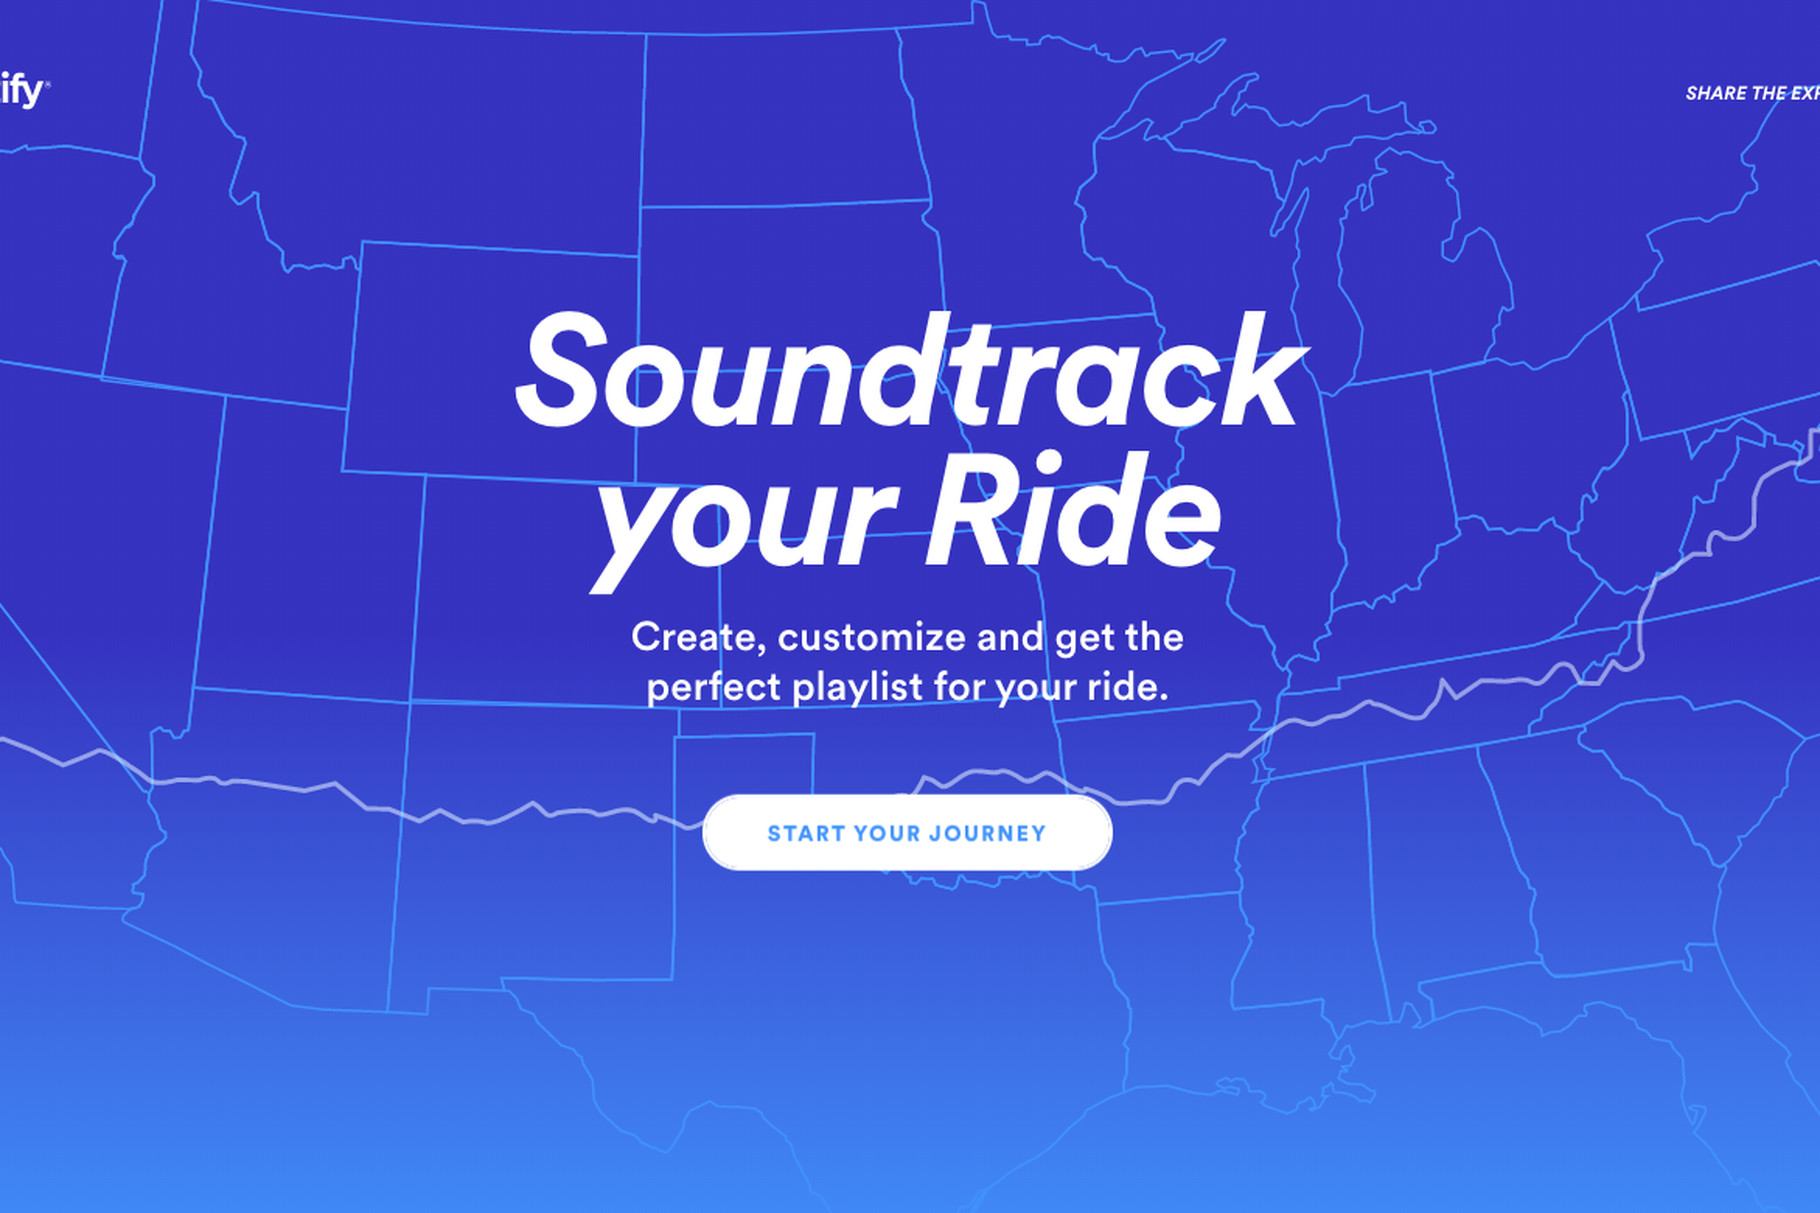 Spotify will now make a road trip playlist for you